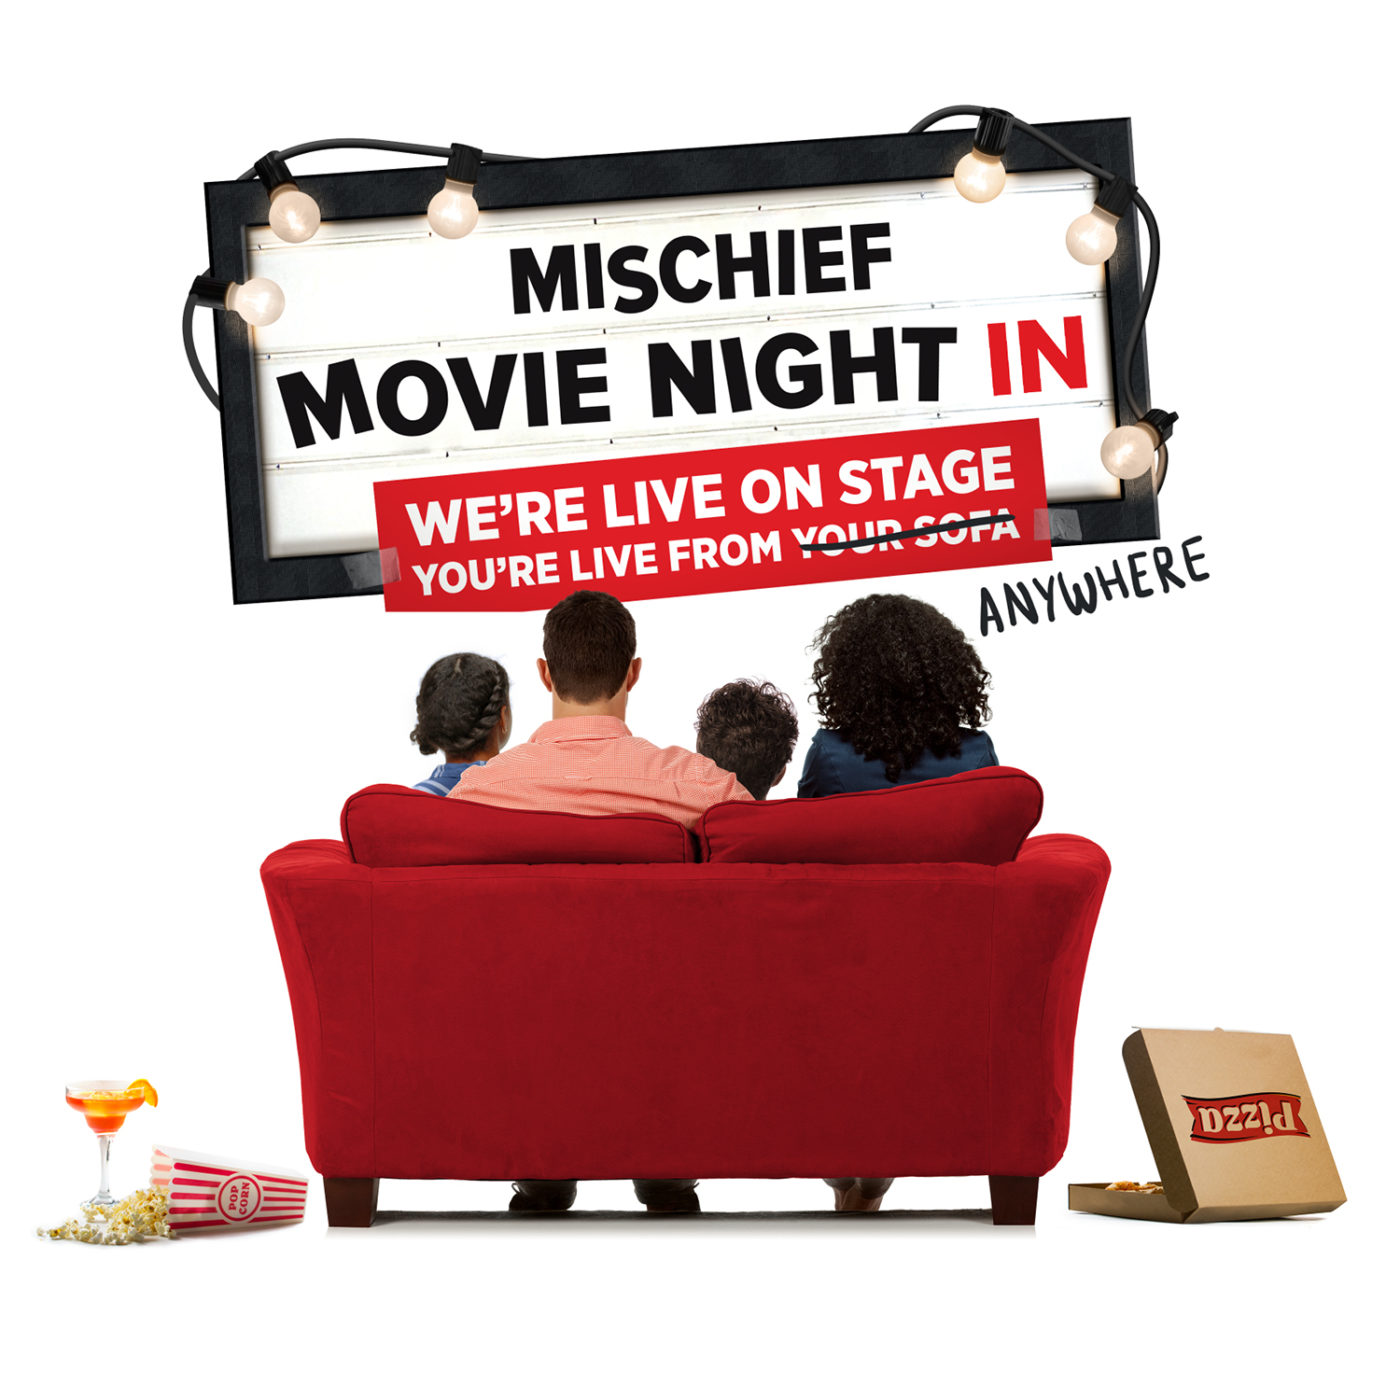 """The back of a red sofa with a mum, dad and two kids facing away from us and up at an old style cinema listing sign that reads """"Mischief Movie Night In"""" with another sign sellotaped to the bottom saying """"We're live on stage, you're live from"""" The words """"your sofa"""" are crossed out and the word """"anywhere"""" scribbled in. To the left of the sofa is a cocktail and a fallen bag of popcorn spilling on the floor. To the right is an open takeaway pizza box."""